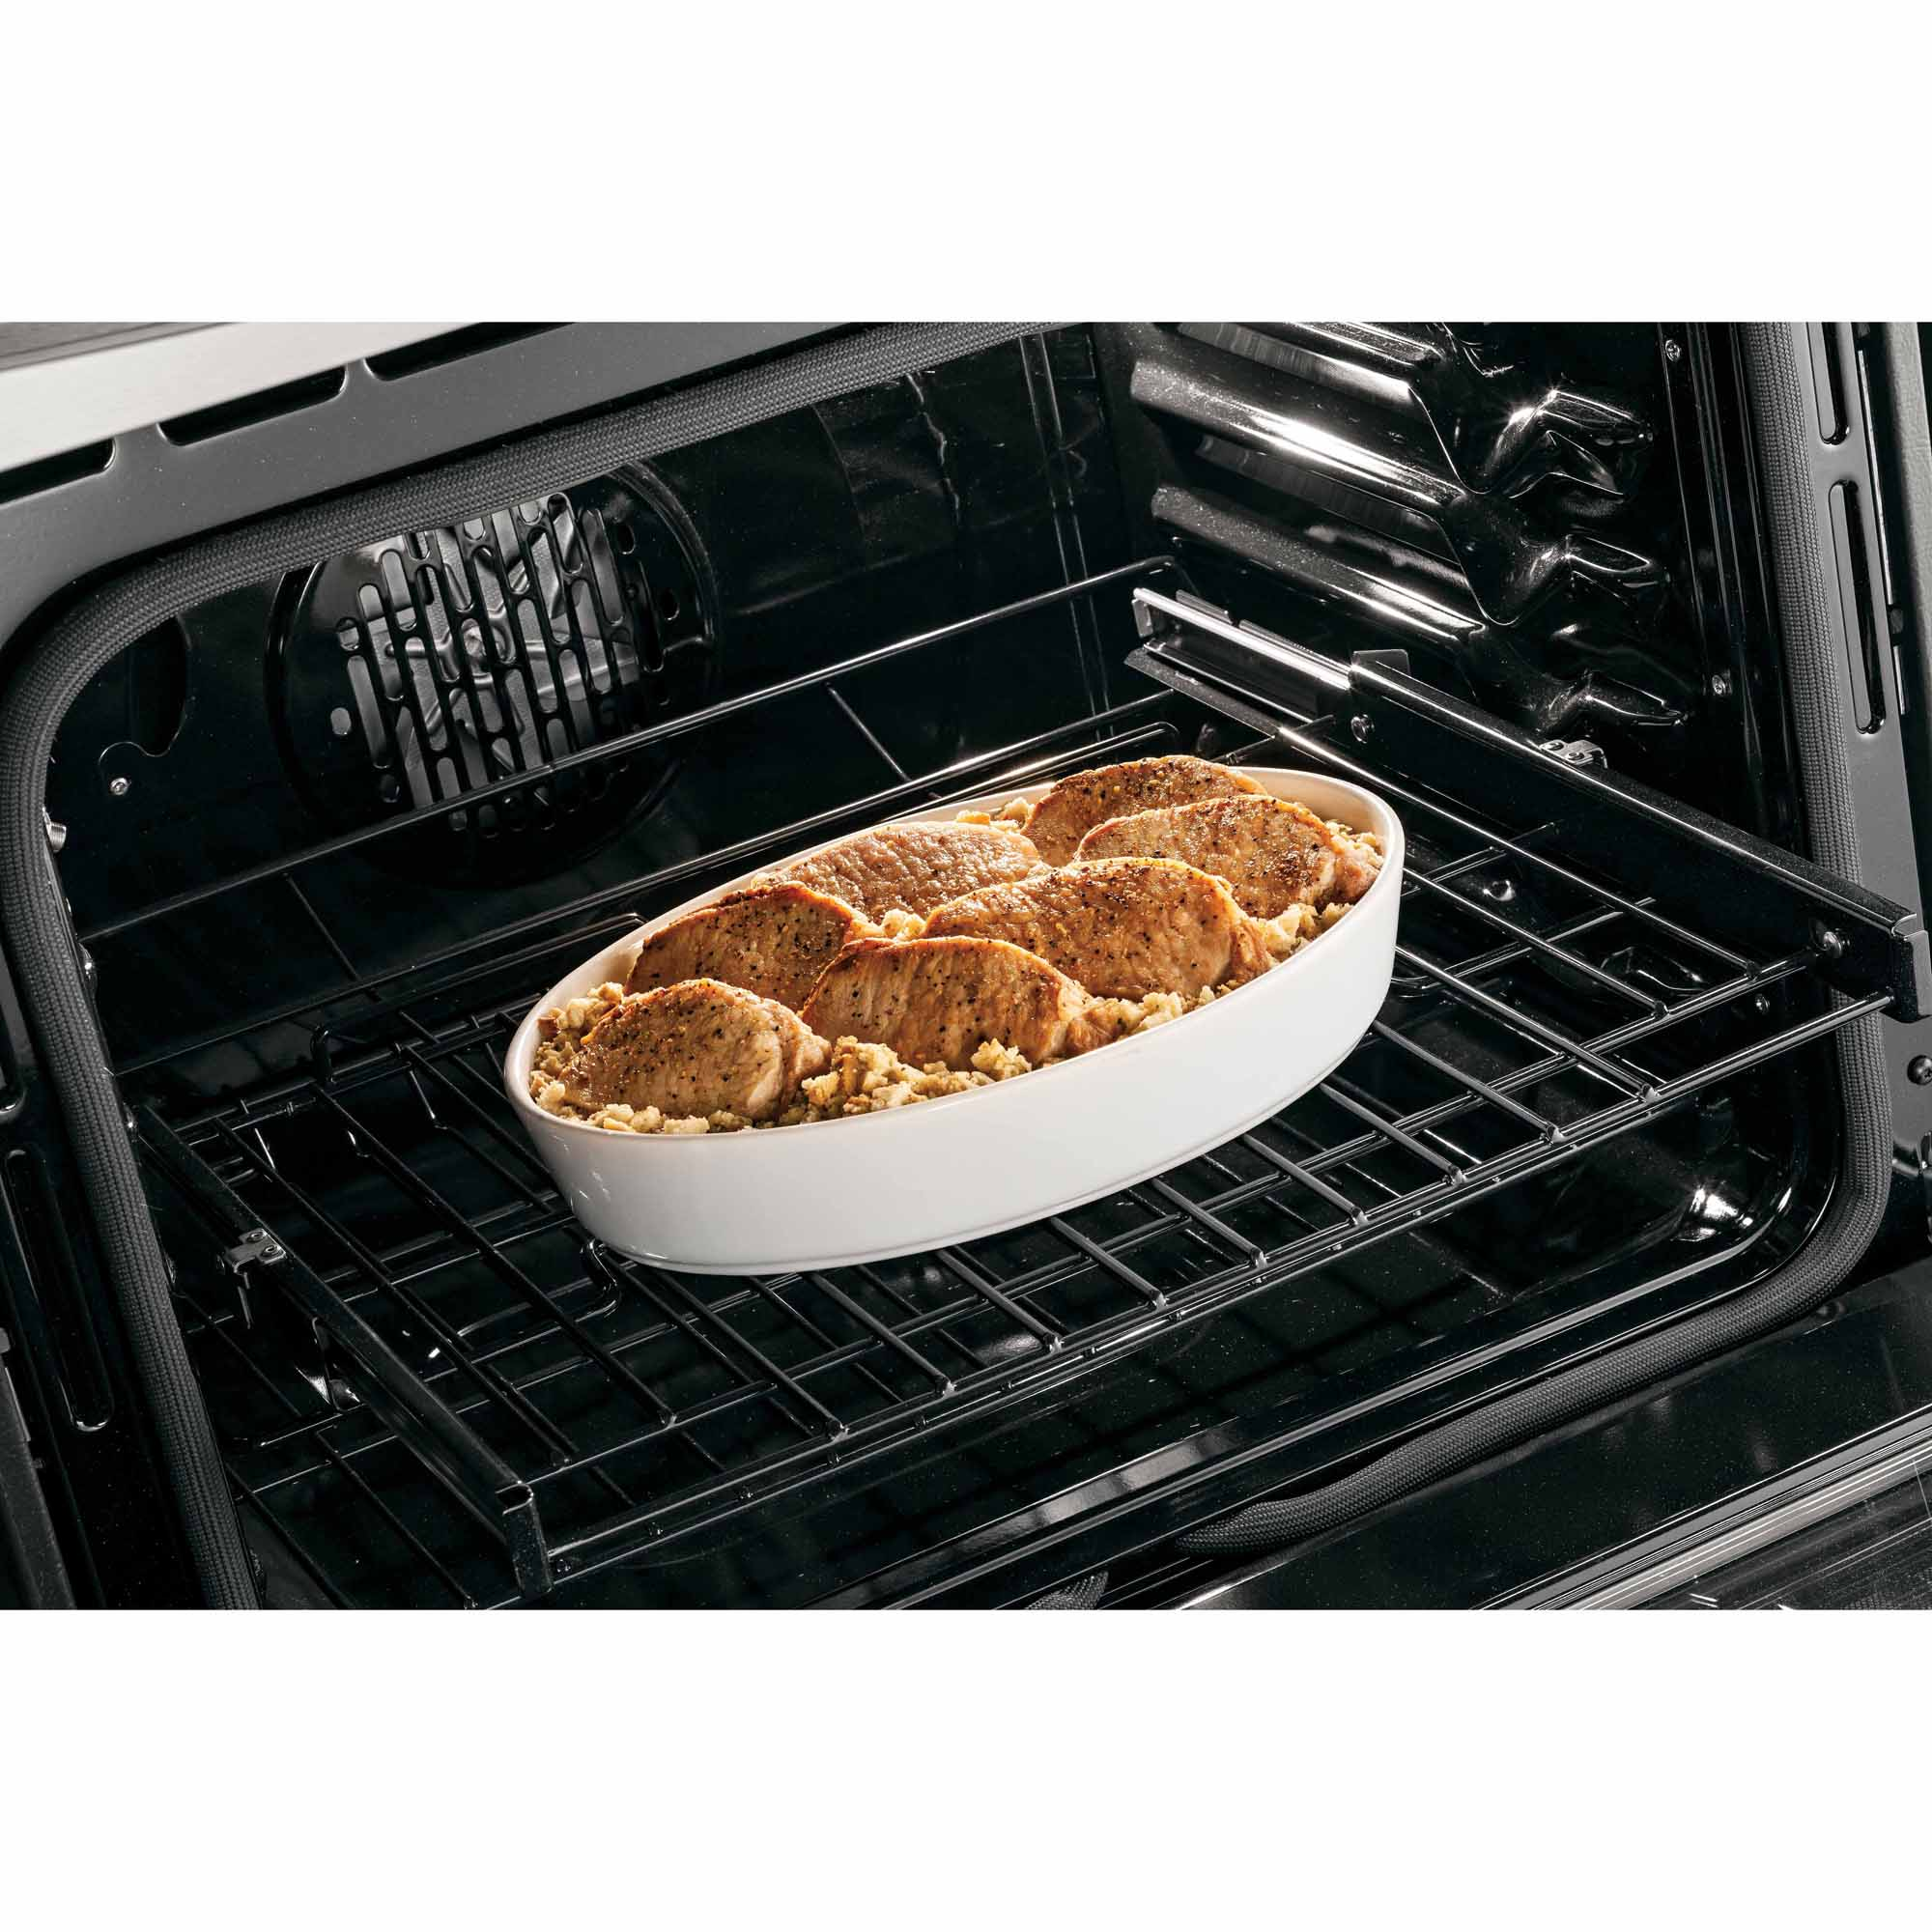 GE Profile P2S920SEFSS 5.9 cu. ft. Dual-Fuel Slide-In Range w/ Warming Drawer - Stainless Steel